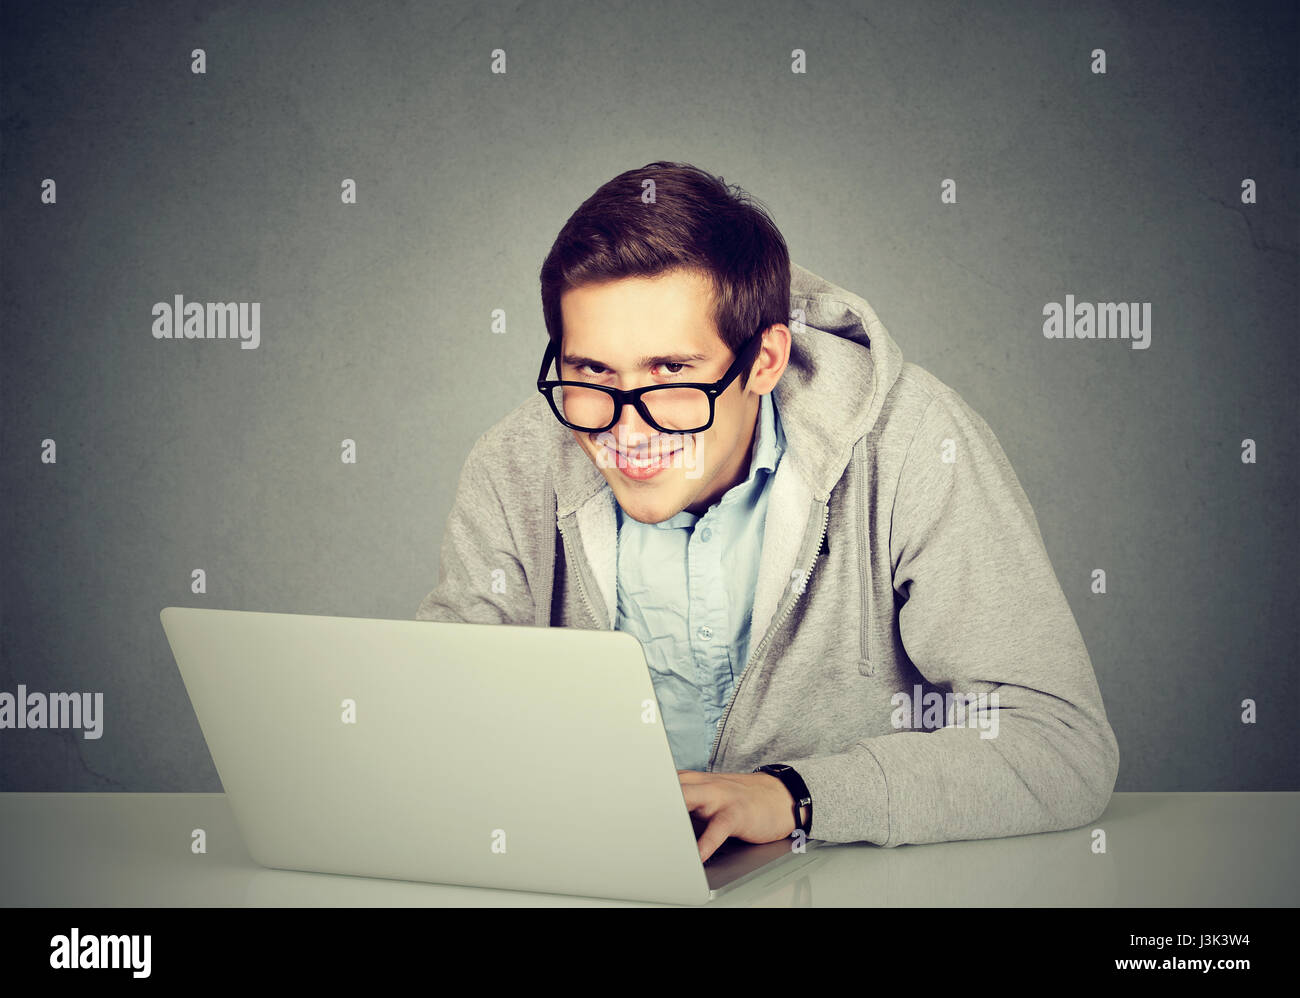 Young sly devious man using a laptop plotting server sabotage - Stock Image